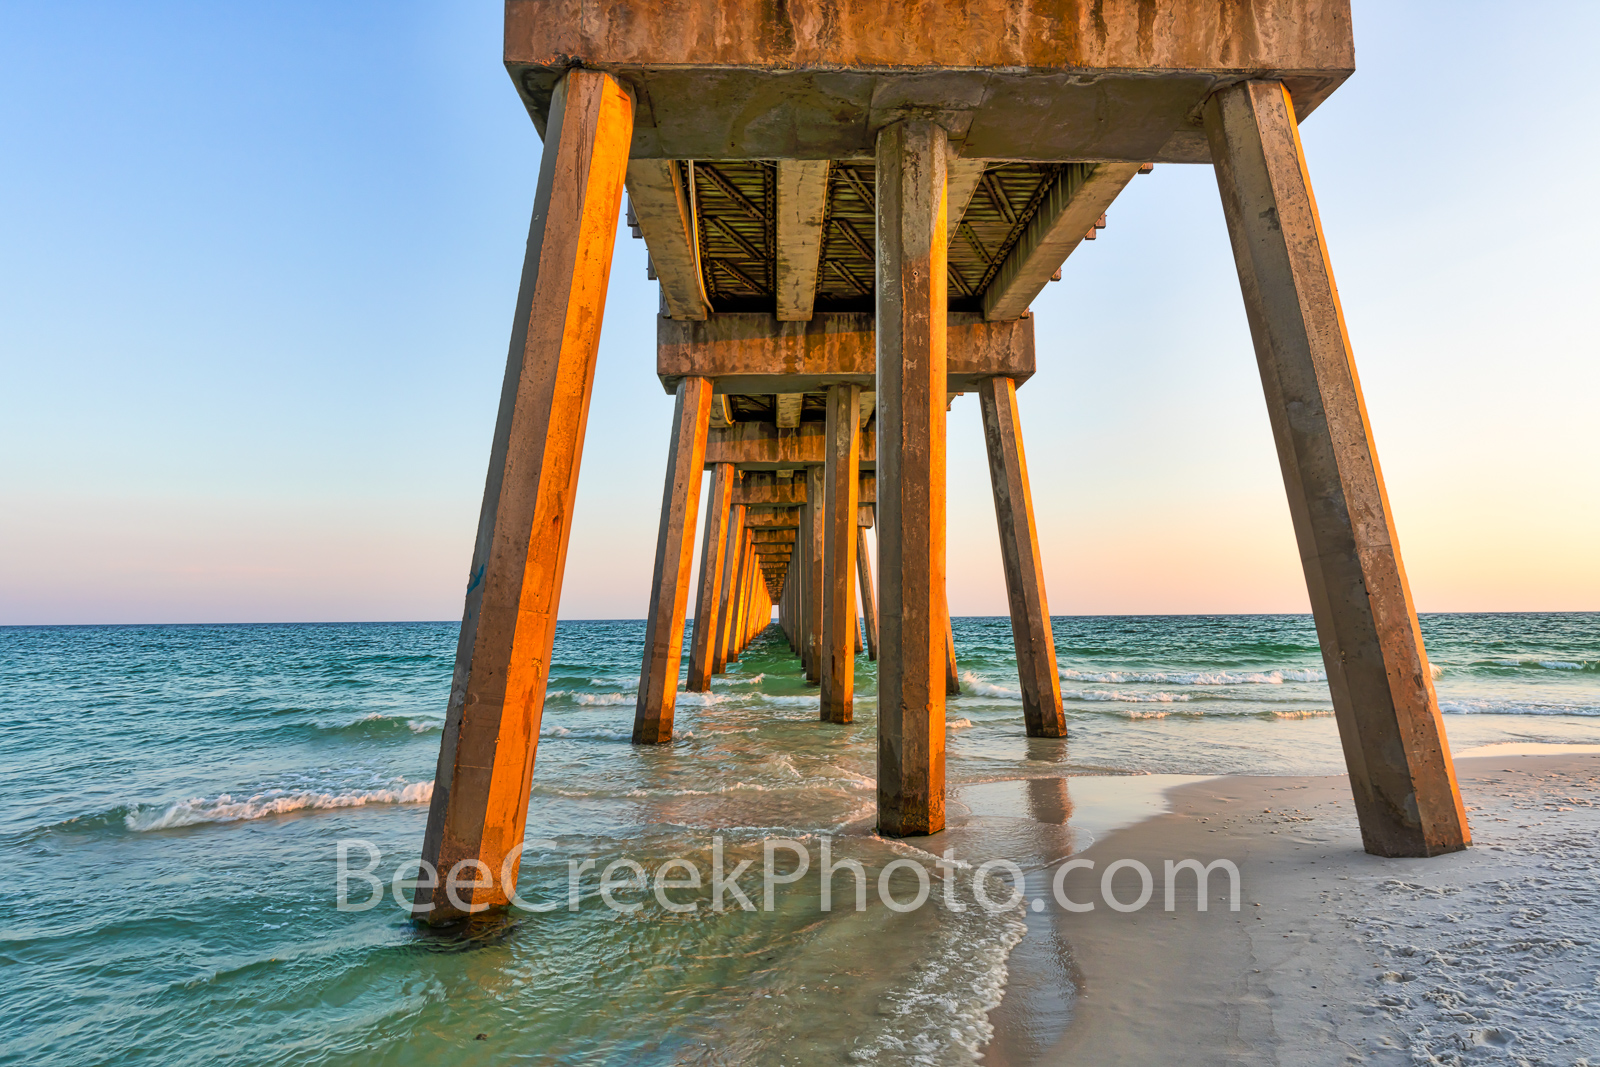 Pensacola Beach Gulf Pier - This capture of the Pensacola Beach Gulf Pier was taken from below to show the structure of this...